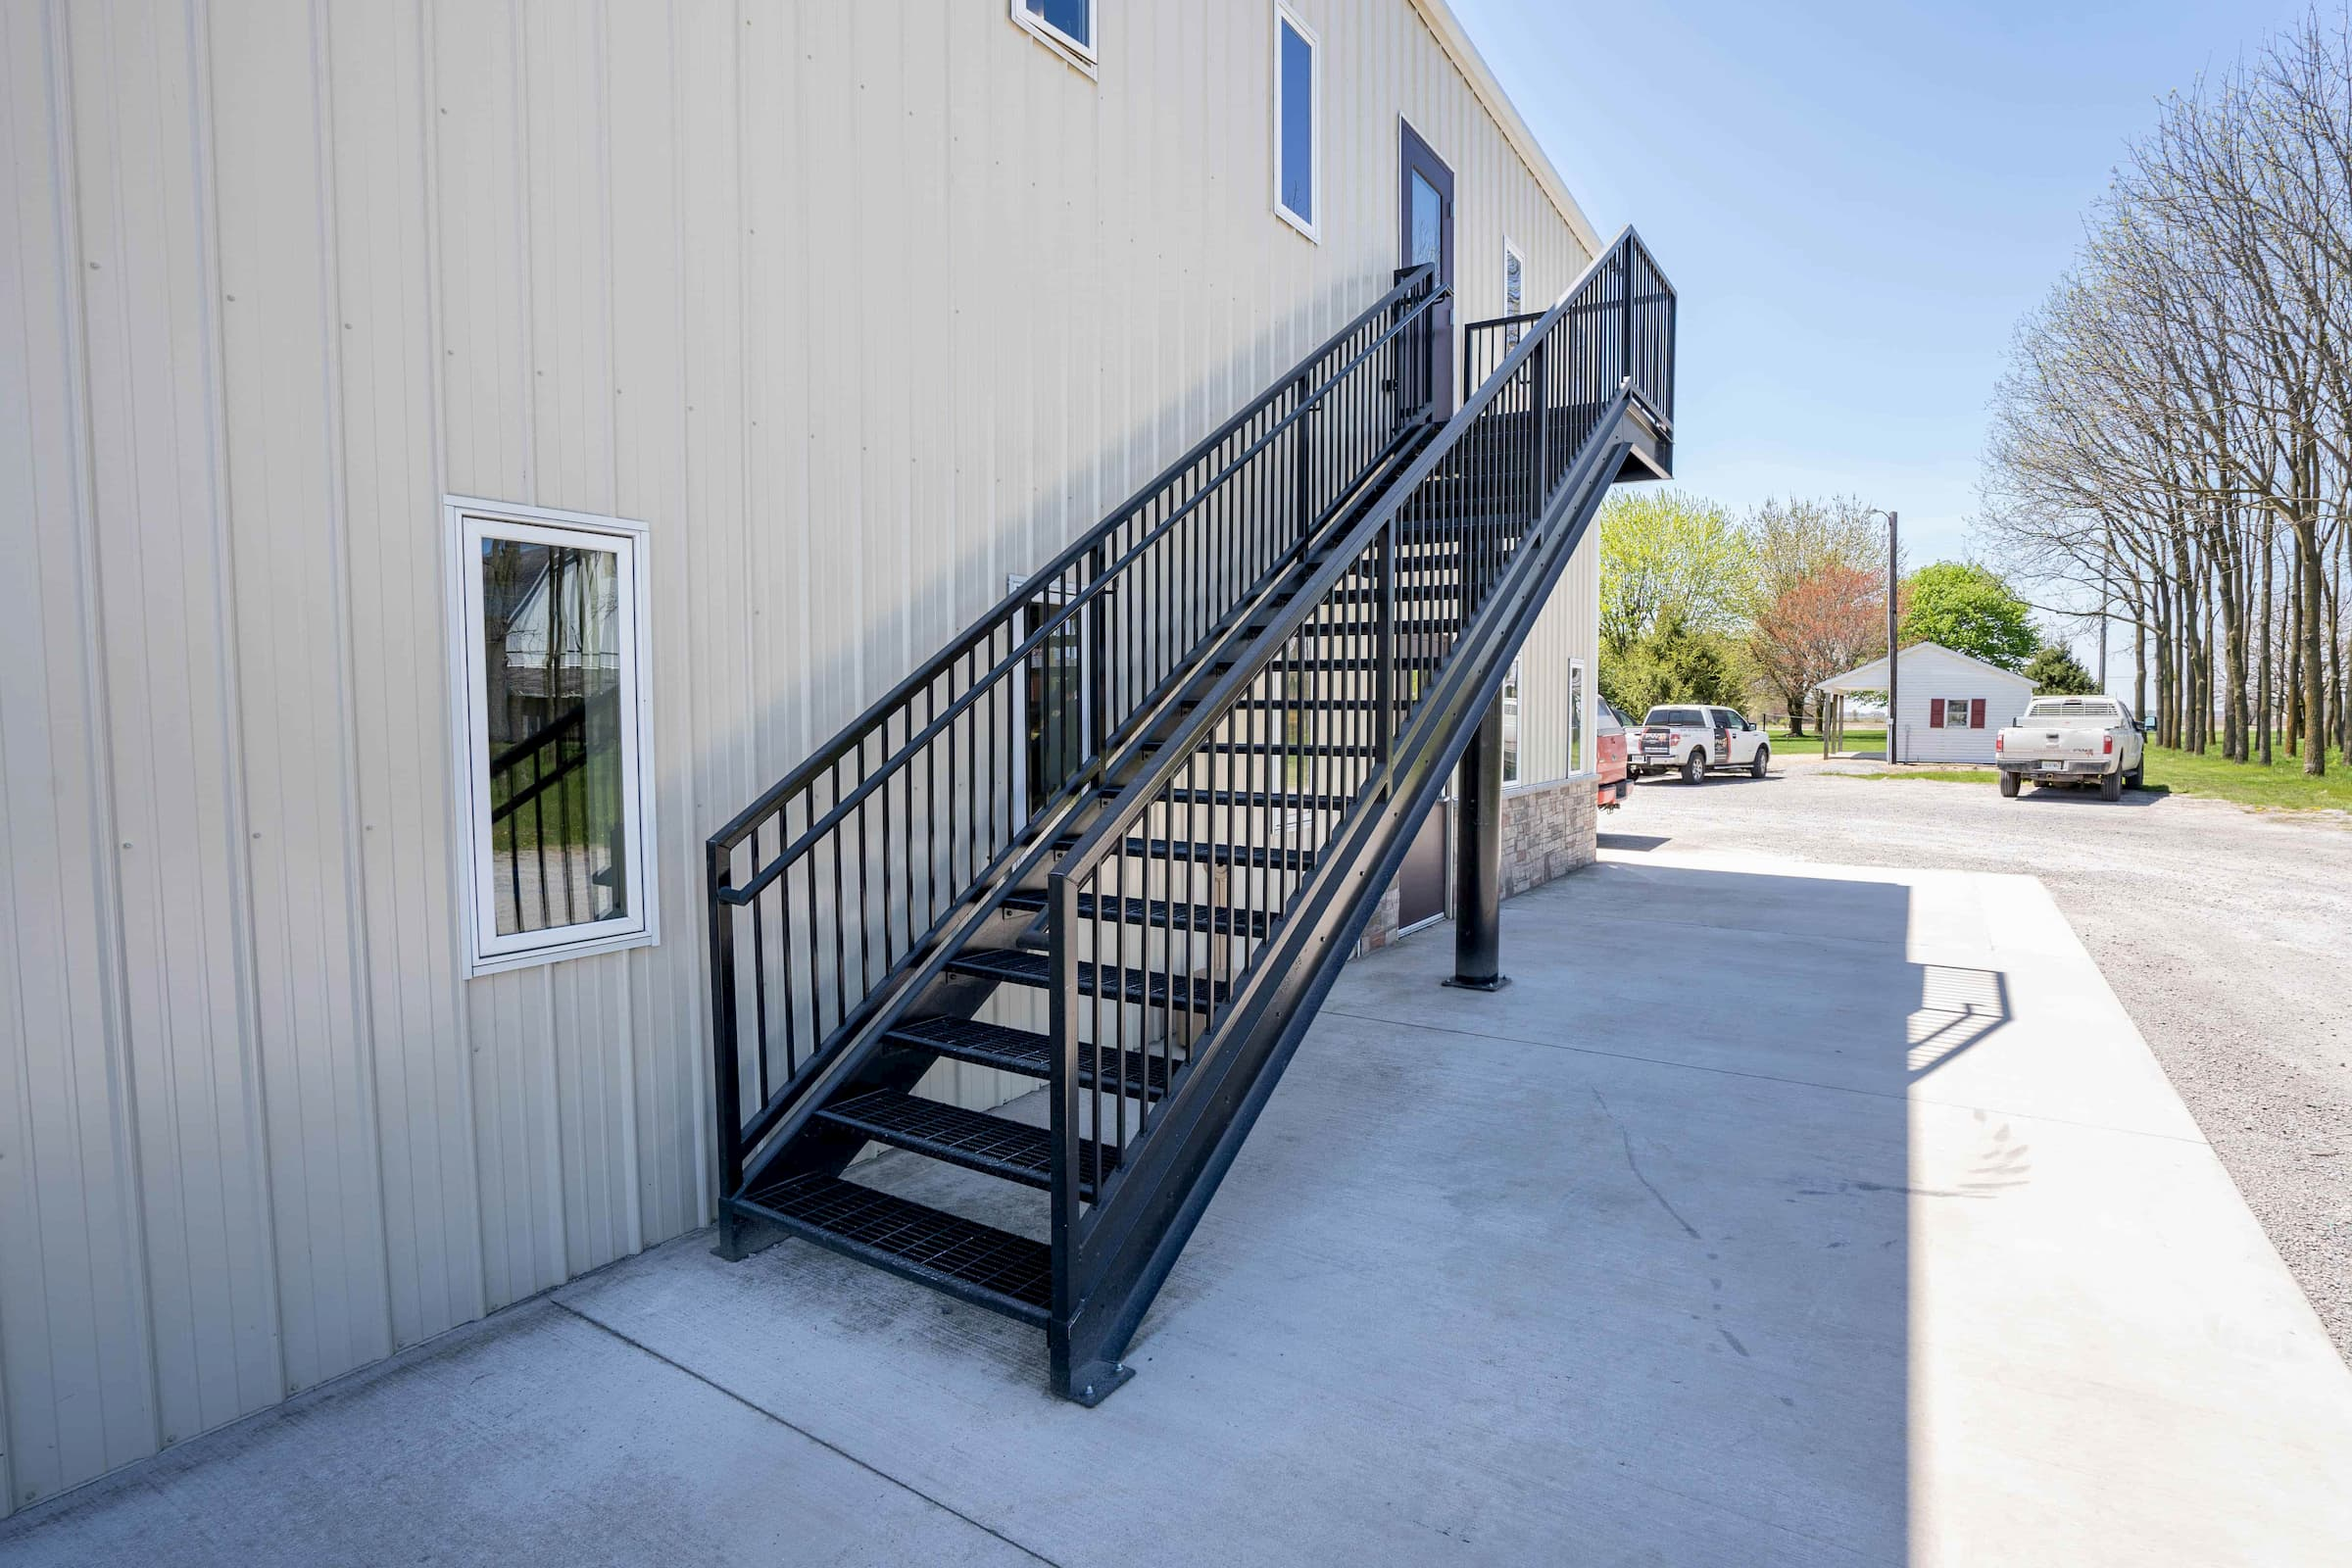 Commercial Stair with Bar Grate Treads